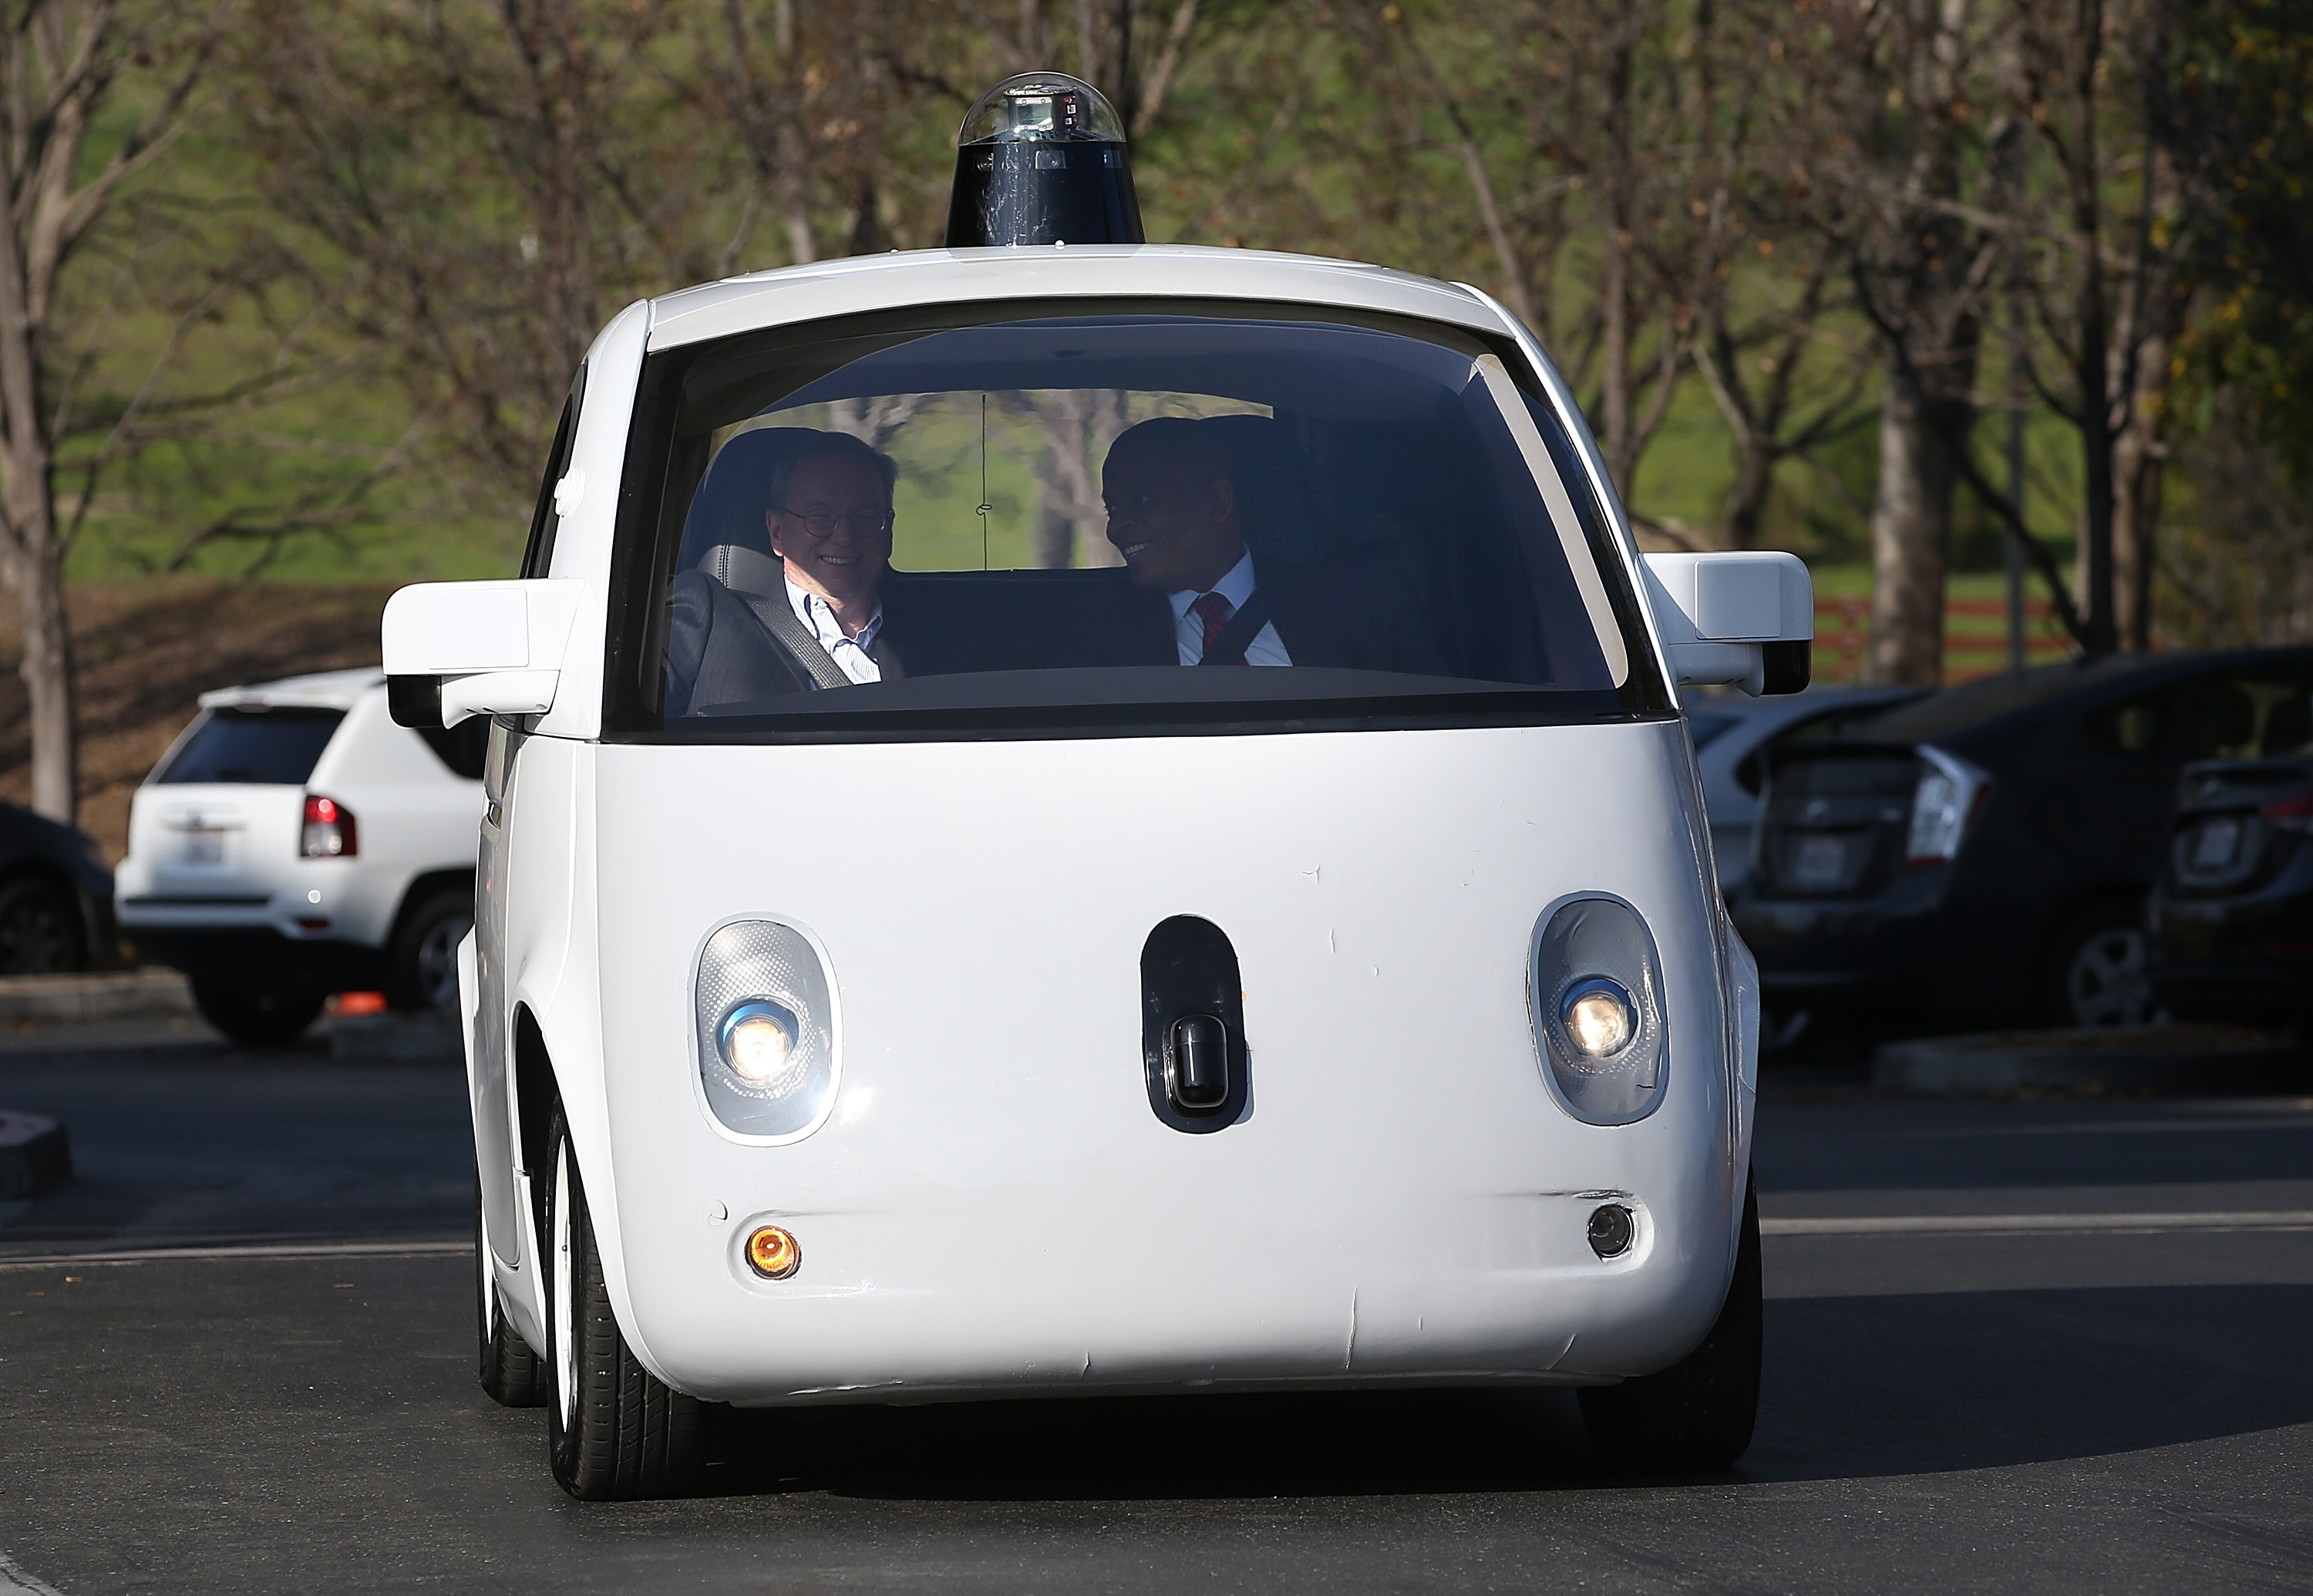 U.S. Transportation Secretary Anthony Foxx (R) and Google Chairman Eric Schmidt (L) ride in a Google self-driving car at the Google headquarters on Feb. 2, 2015 in Mountain View, California.